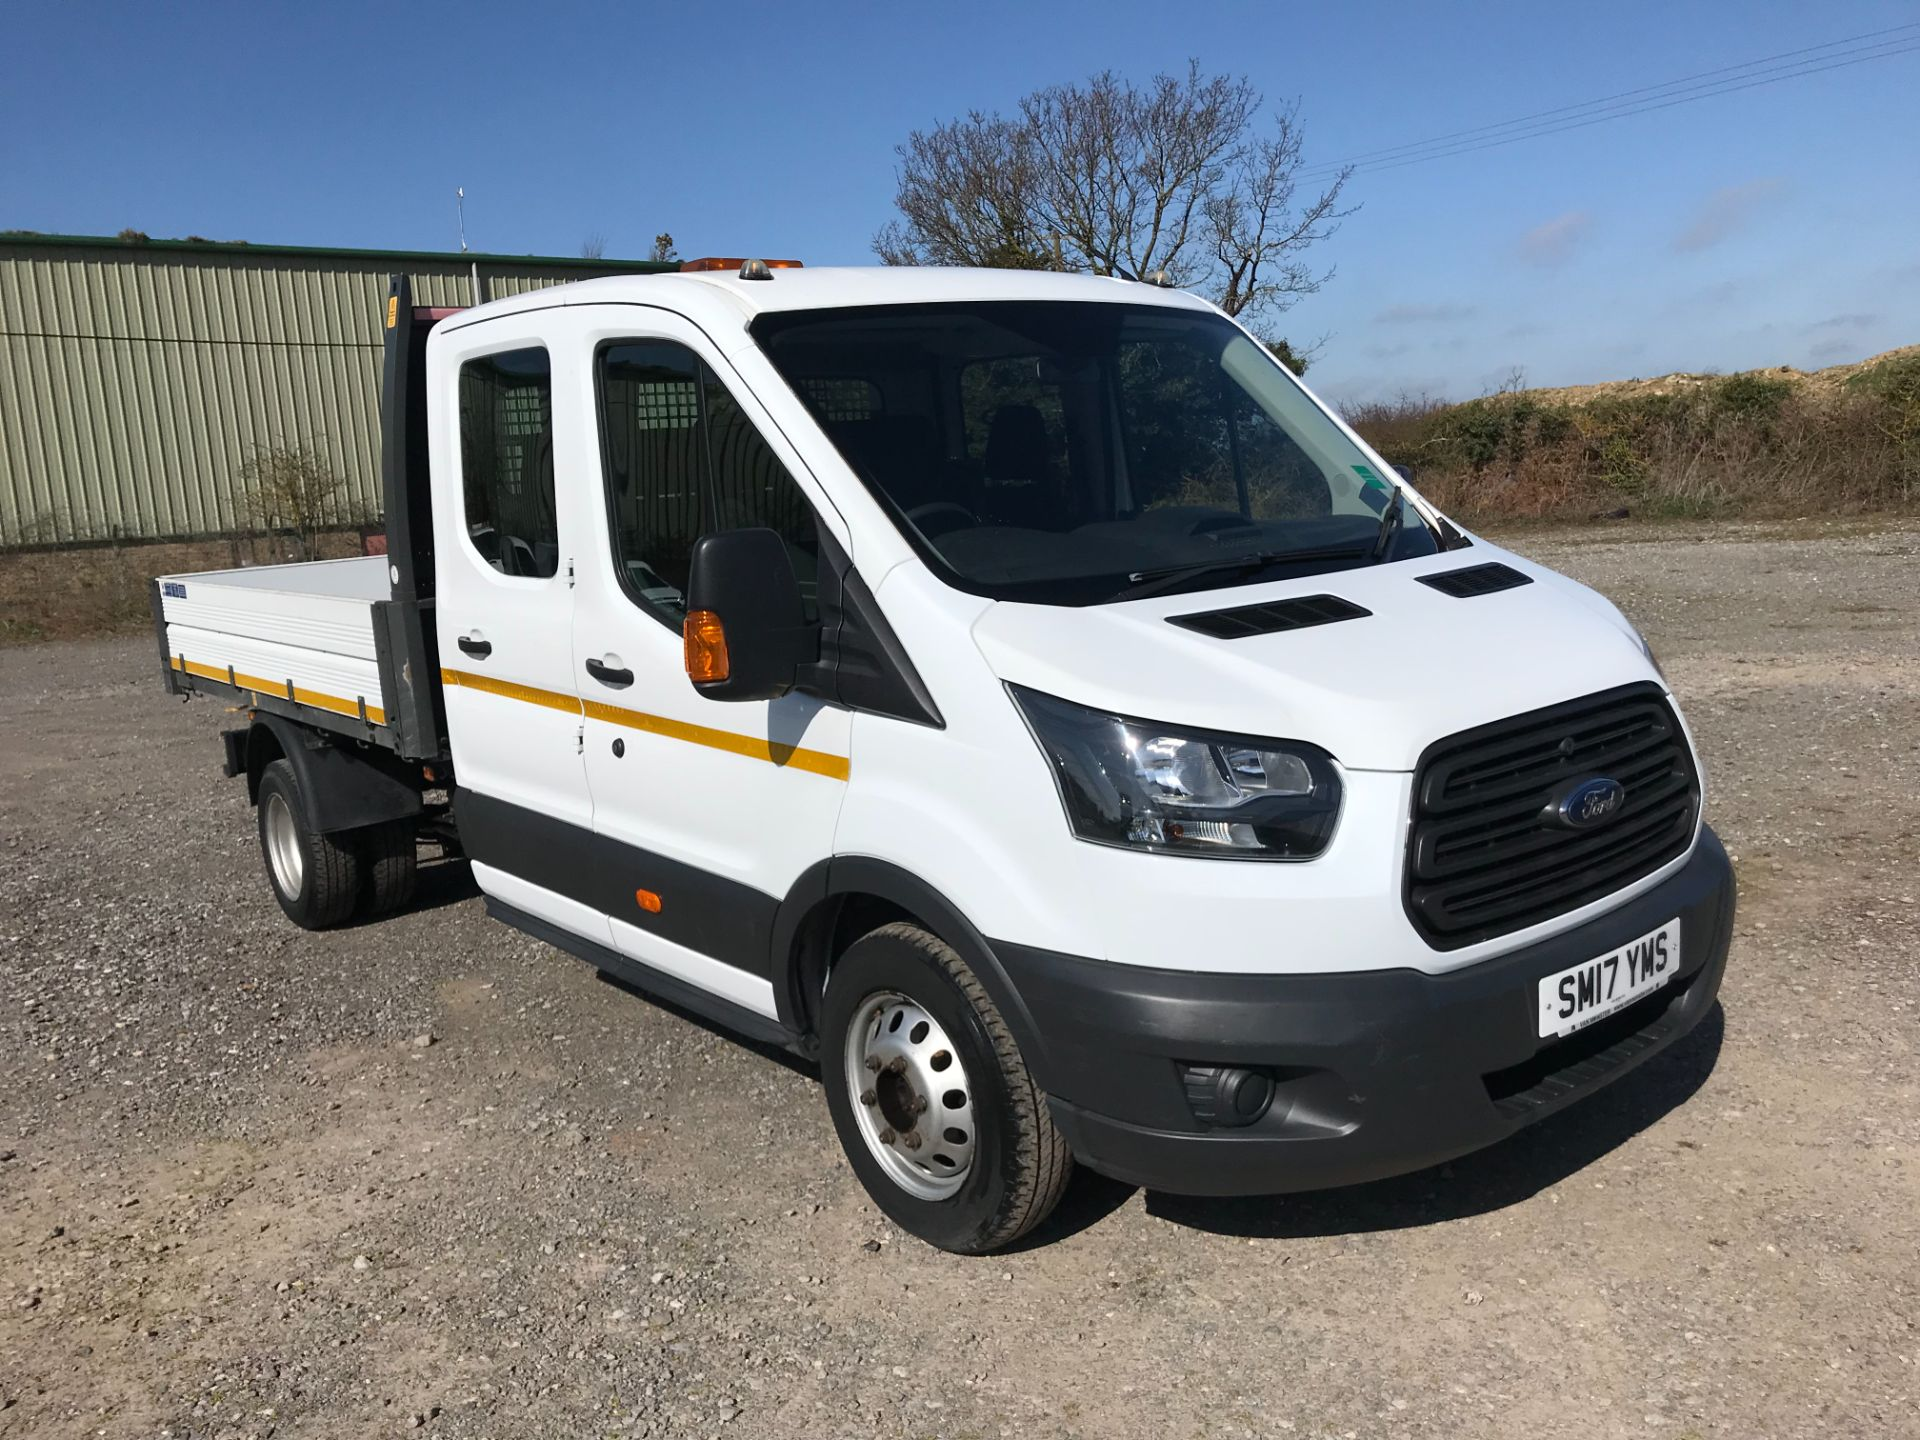 2017 Ford Transit 350 L3 DOUBLE CAB TIPPER 130PS EURO 6 (SM17YMS)